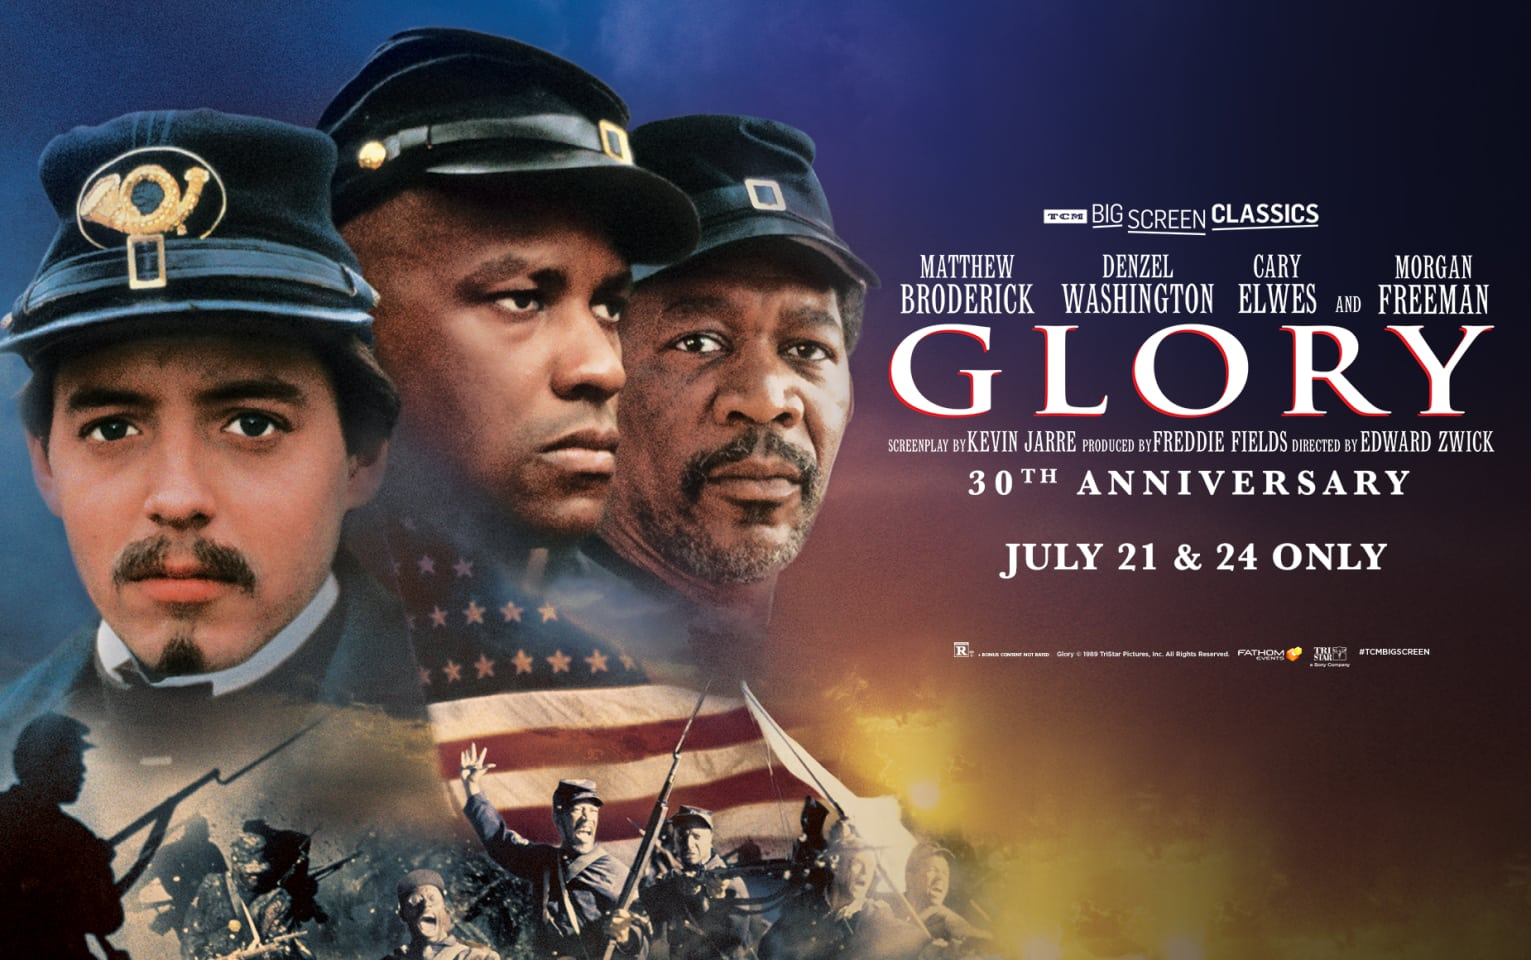 Glory 30th Anniversary (1989) presented by TCM Poster 1